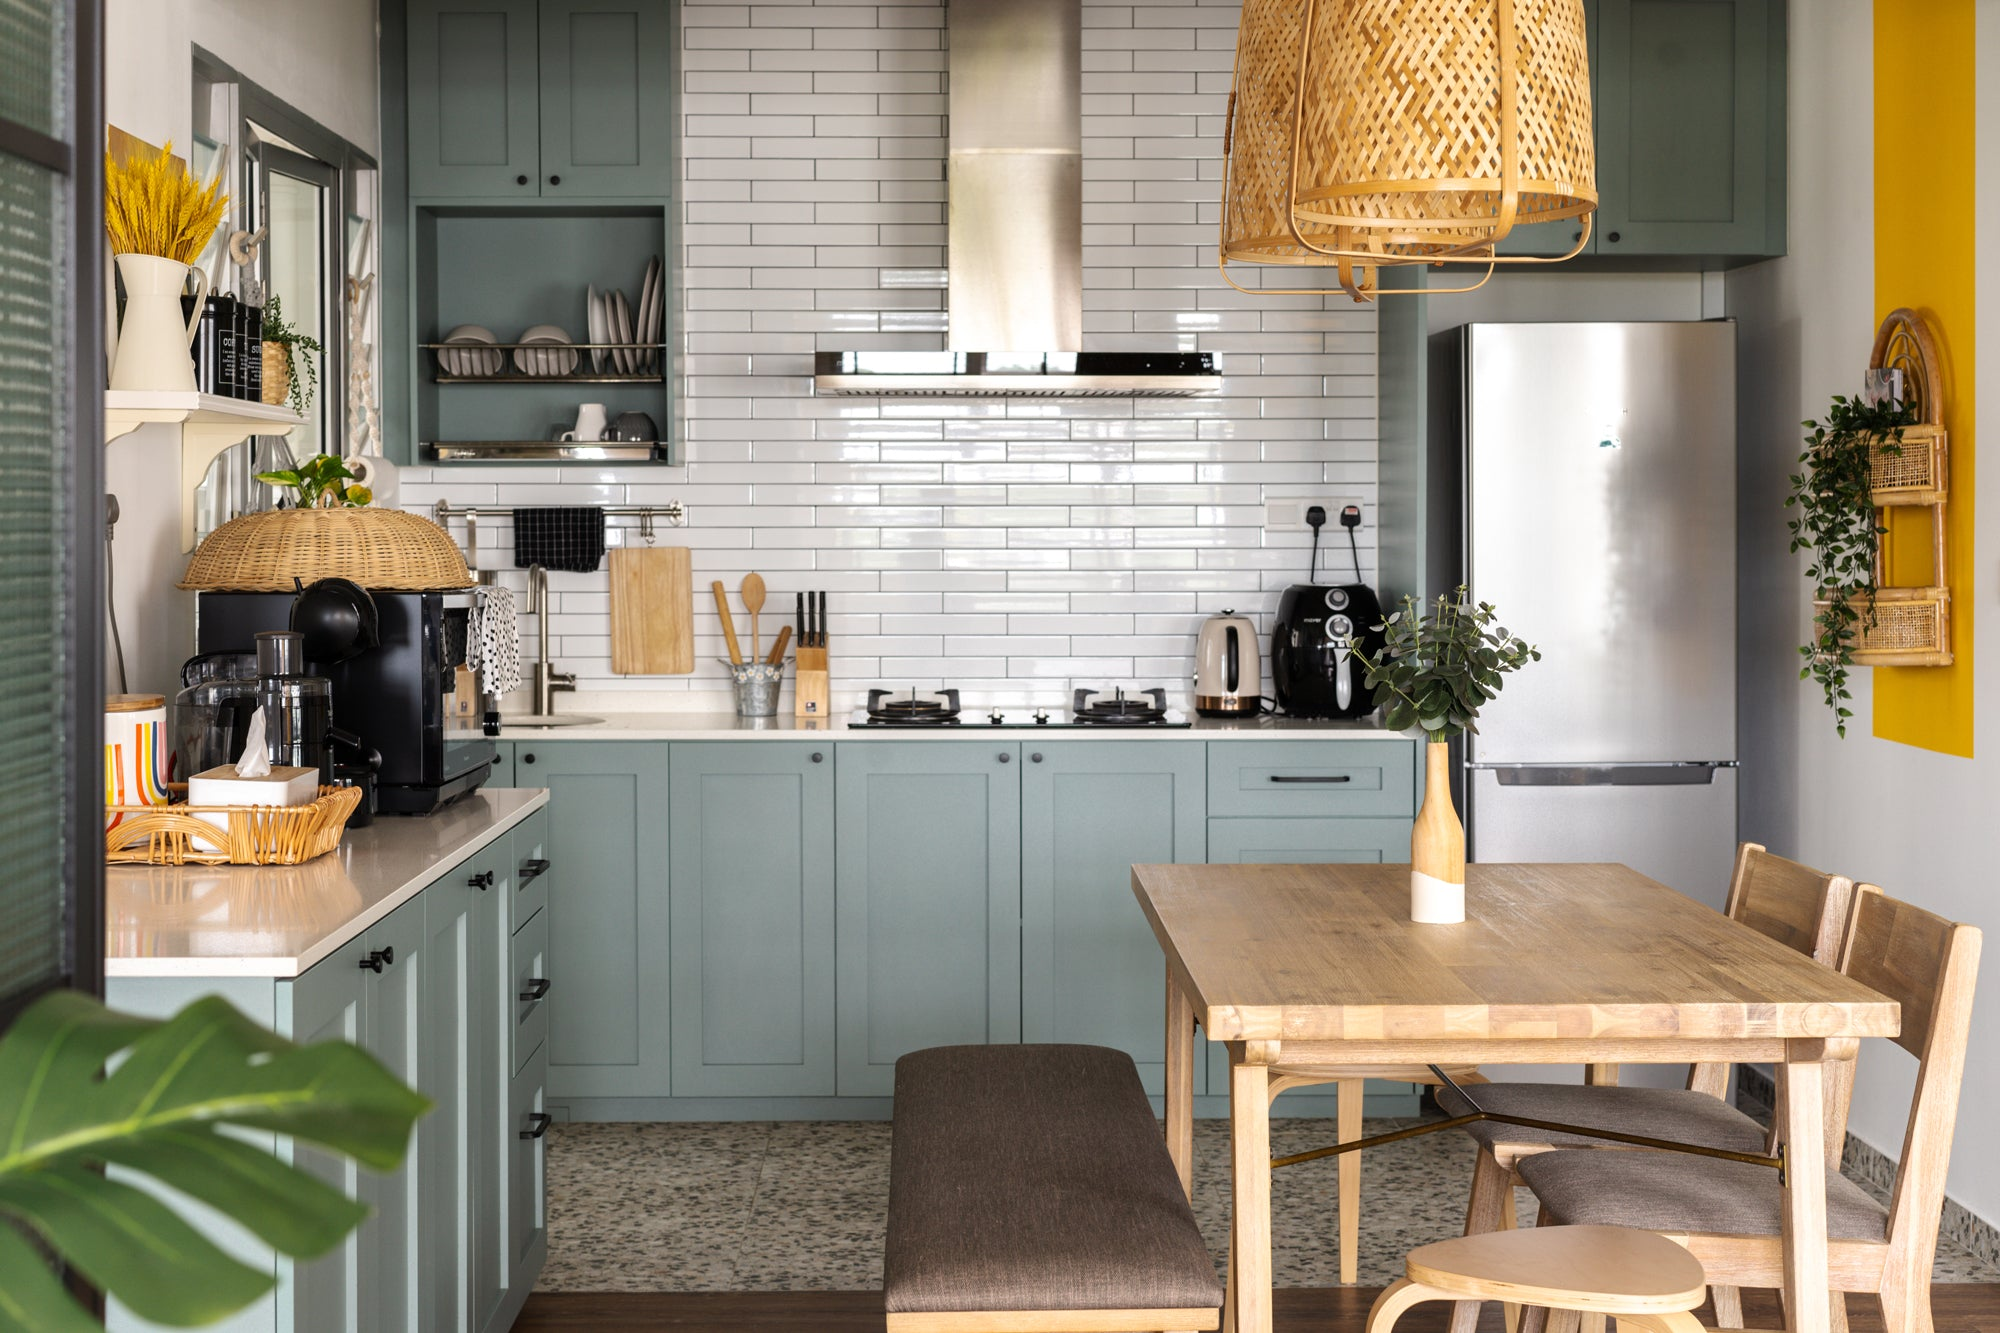 modern cottage kitchen with green and brown interior decor